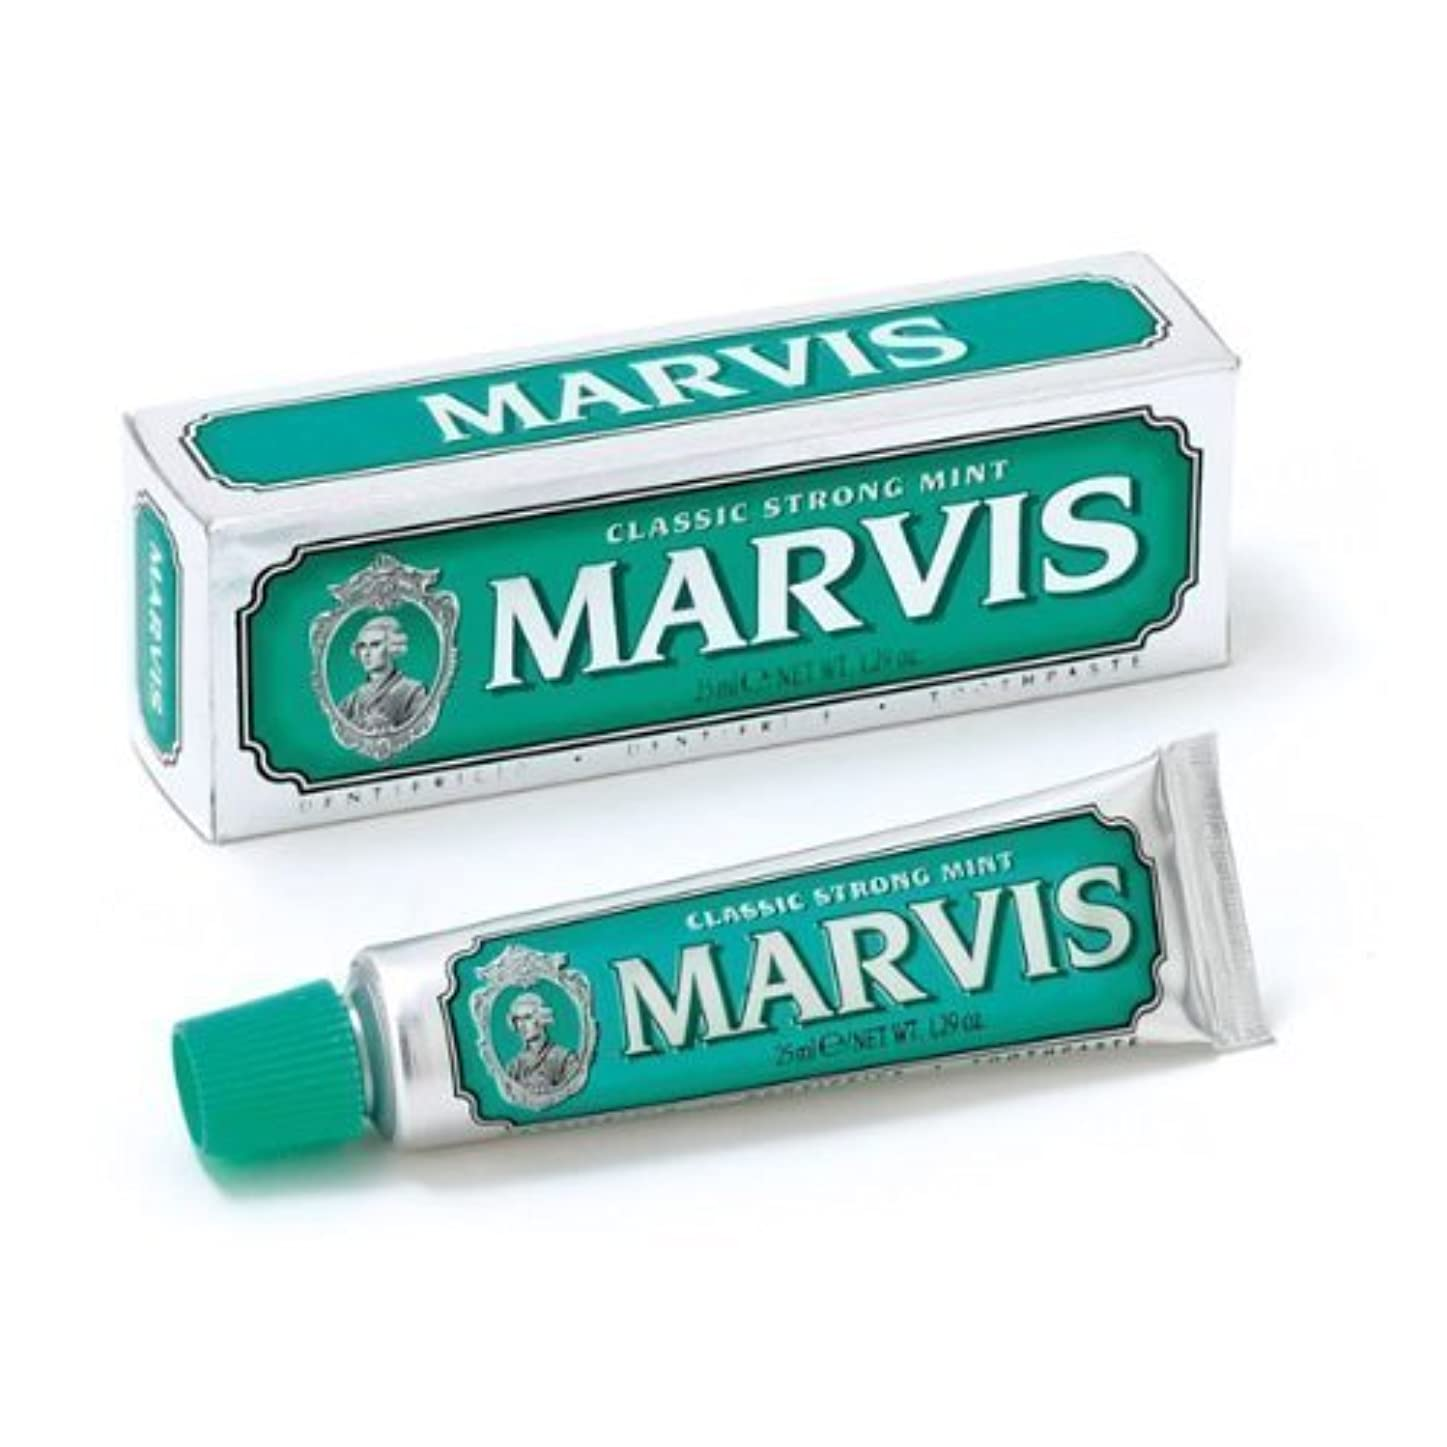 田舎者急いで名門Marvis Toothpaste - Classic Strong Mint 25ml Travel Size - 4 PACK by Marvis [並行輸入品]